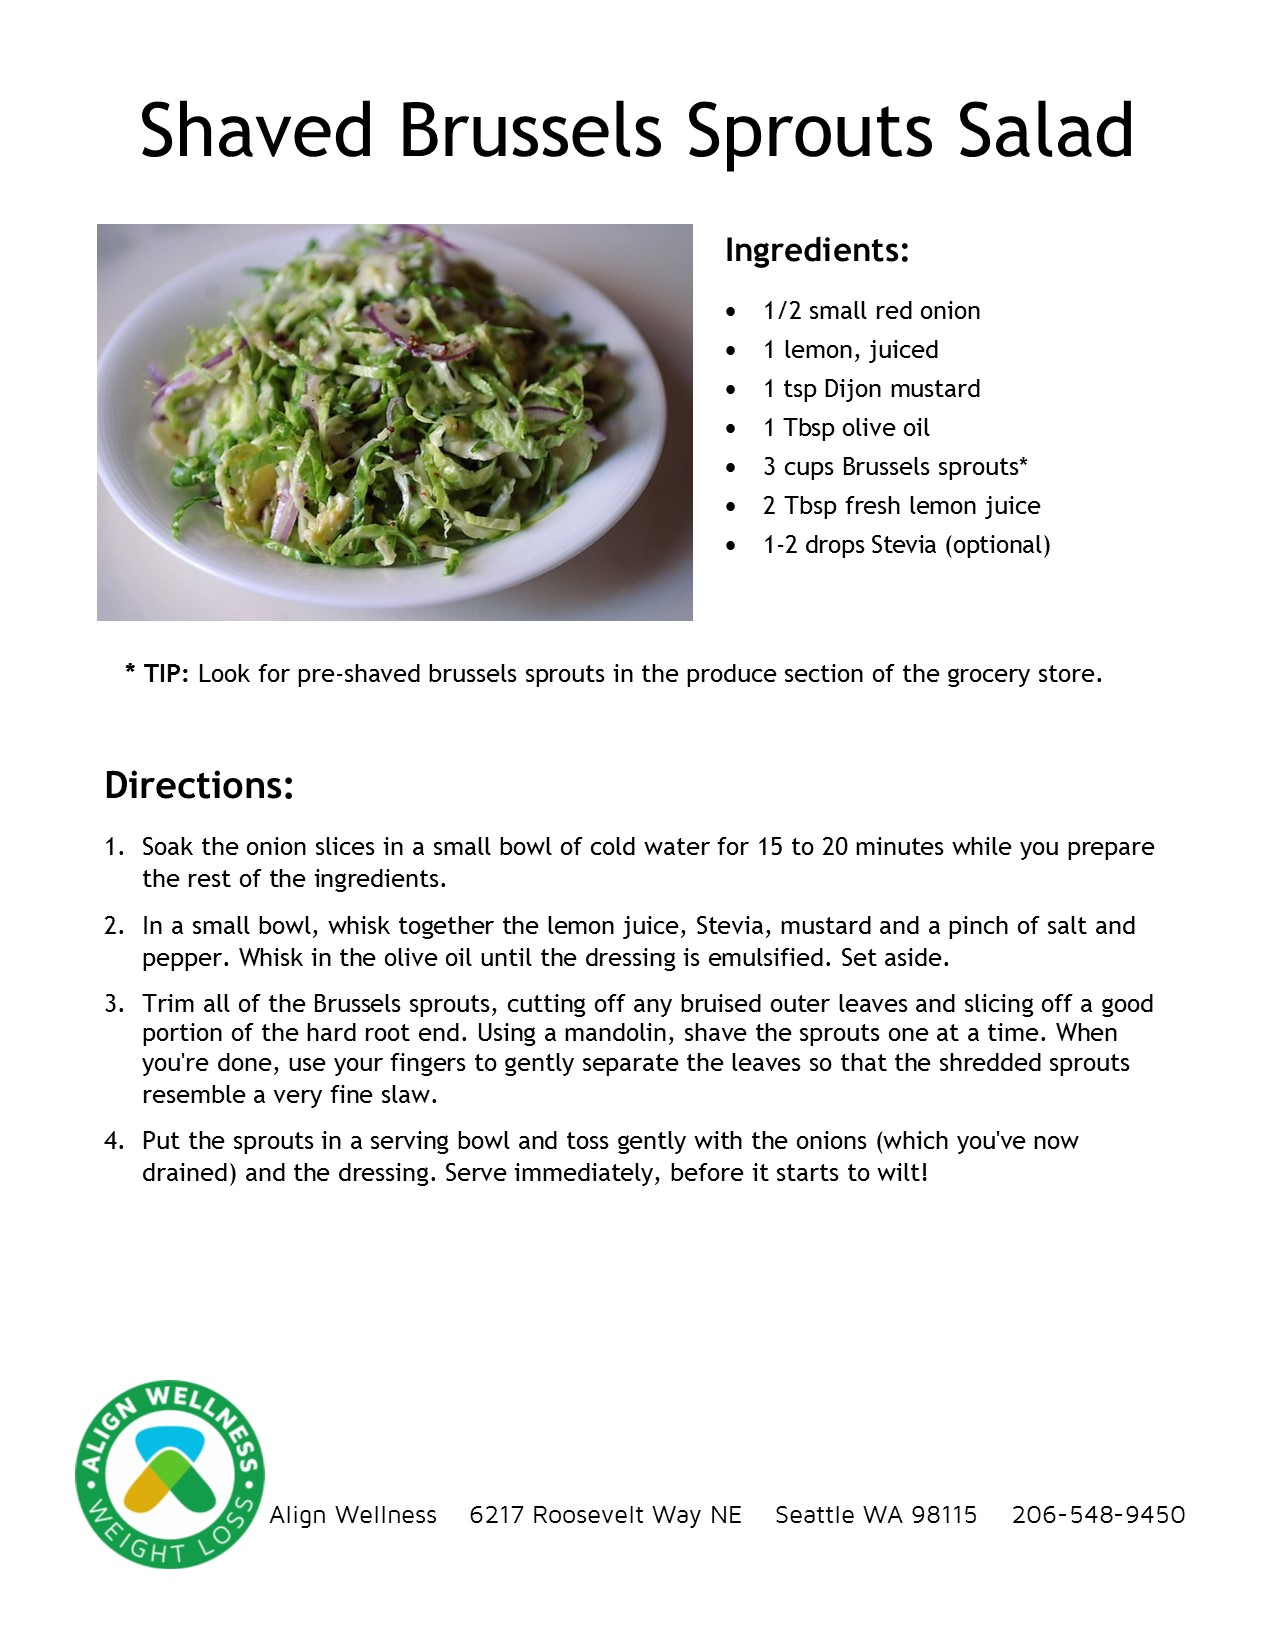 Shaved Brussels Sprouts Salad Ideal Protein Recipe